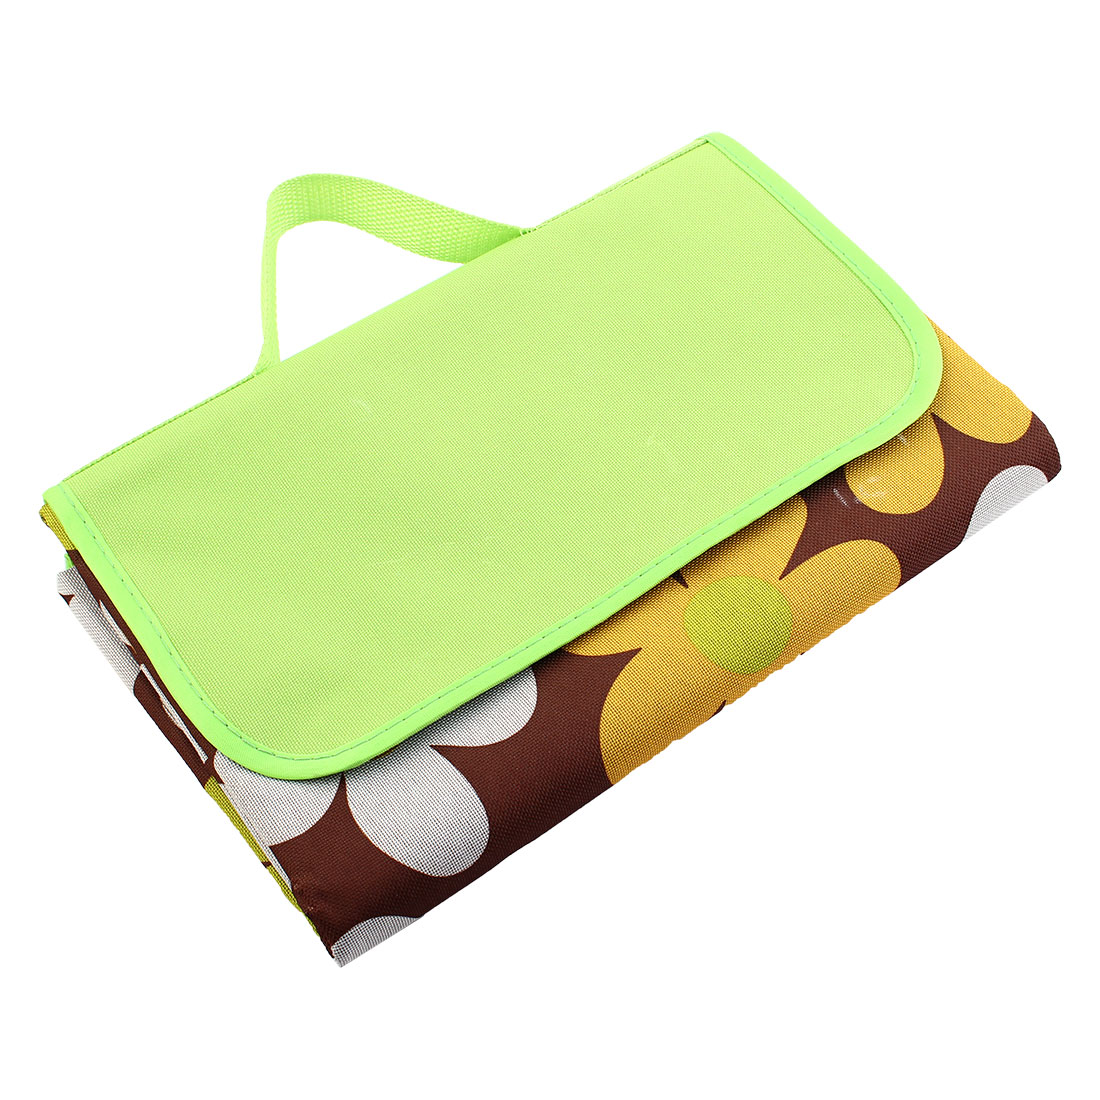 Outdoor Beach Water Resistant Pad Foldable Picnic Blanket Portable Camping Mat